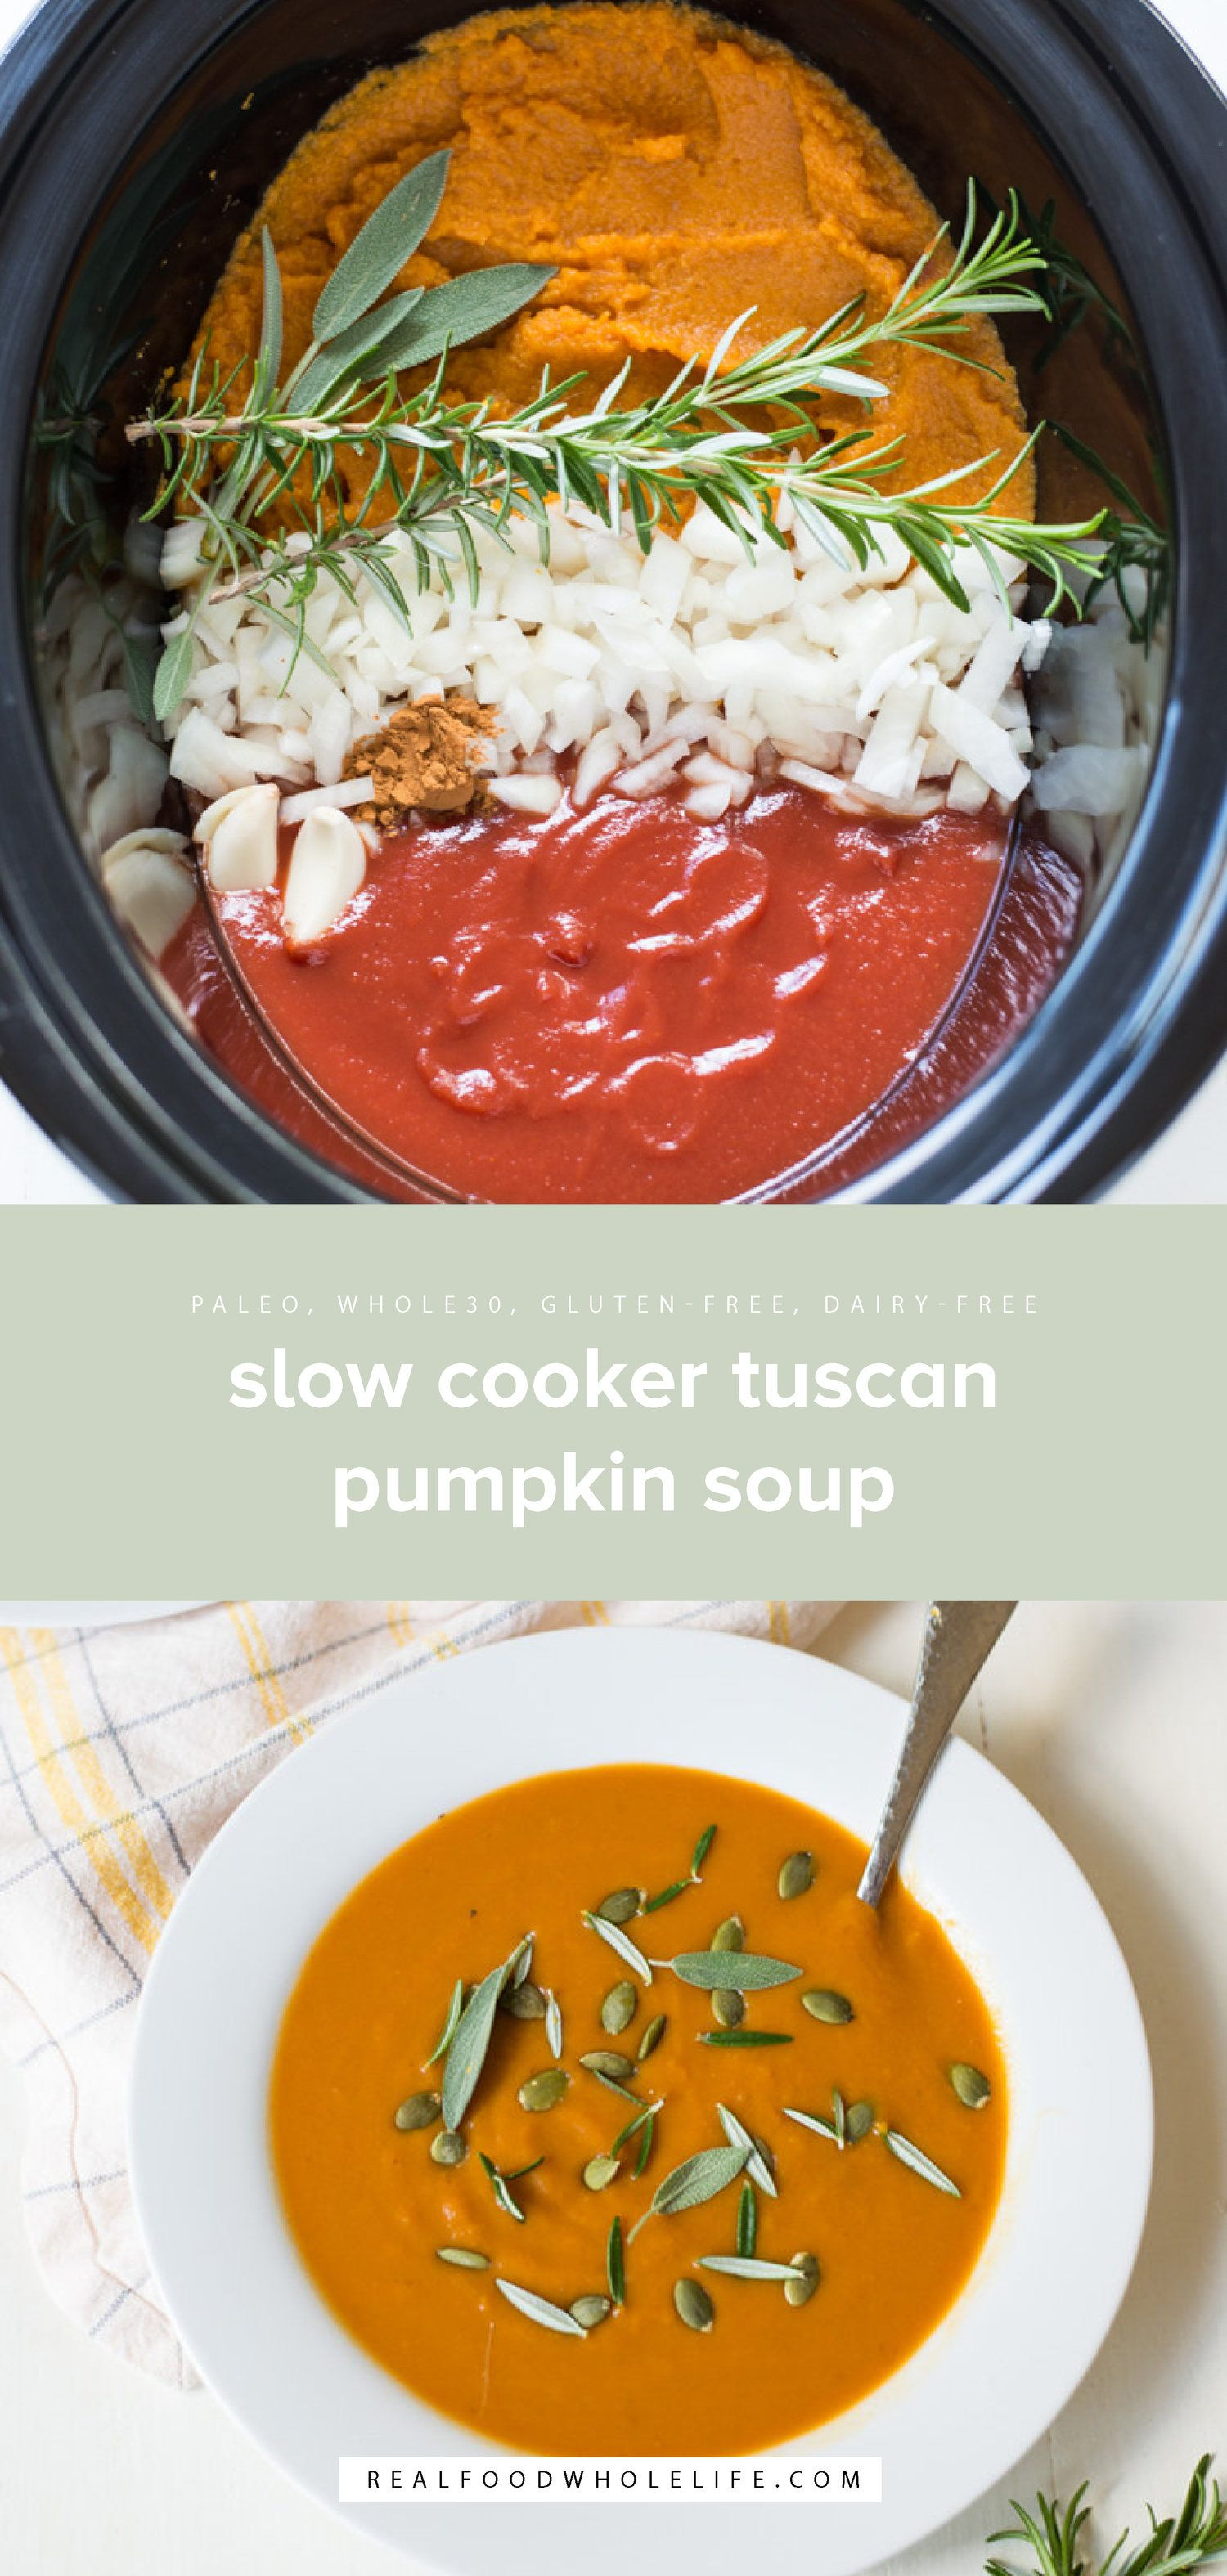 Slow Cooker Tuscan Pumpkin Soup Slow Cooker Tuscan Pumpkin Soup is an easy crockpot dinner recipe that's bound to become a weeknight staple. Naturally gluten-free, dairy-free, paleo, whole30, and grain-free.